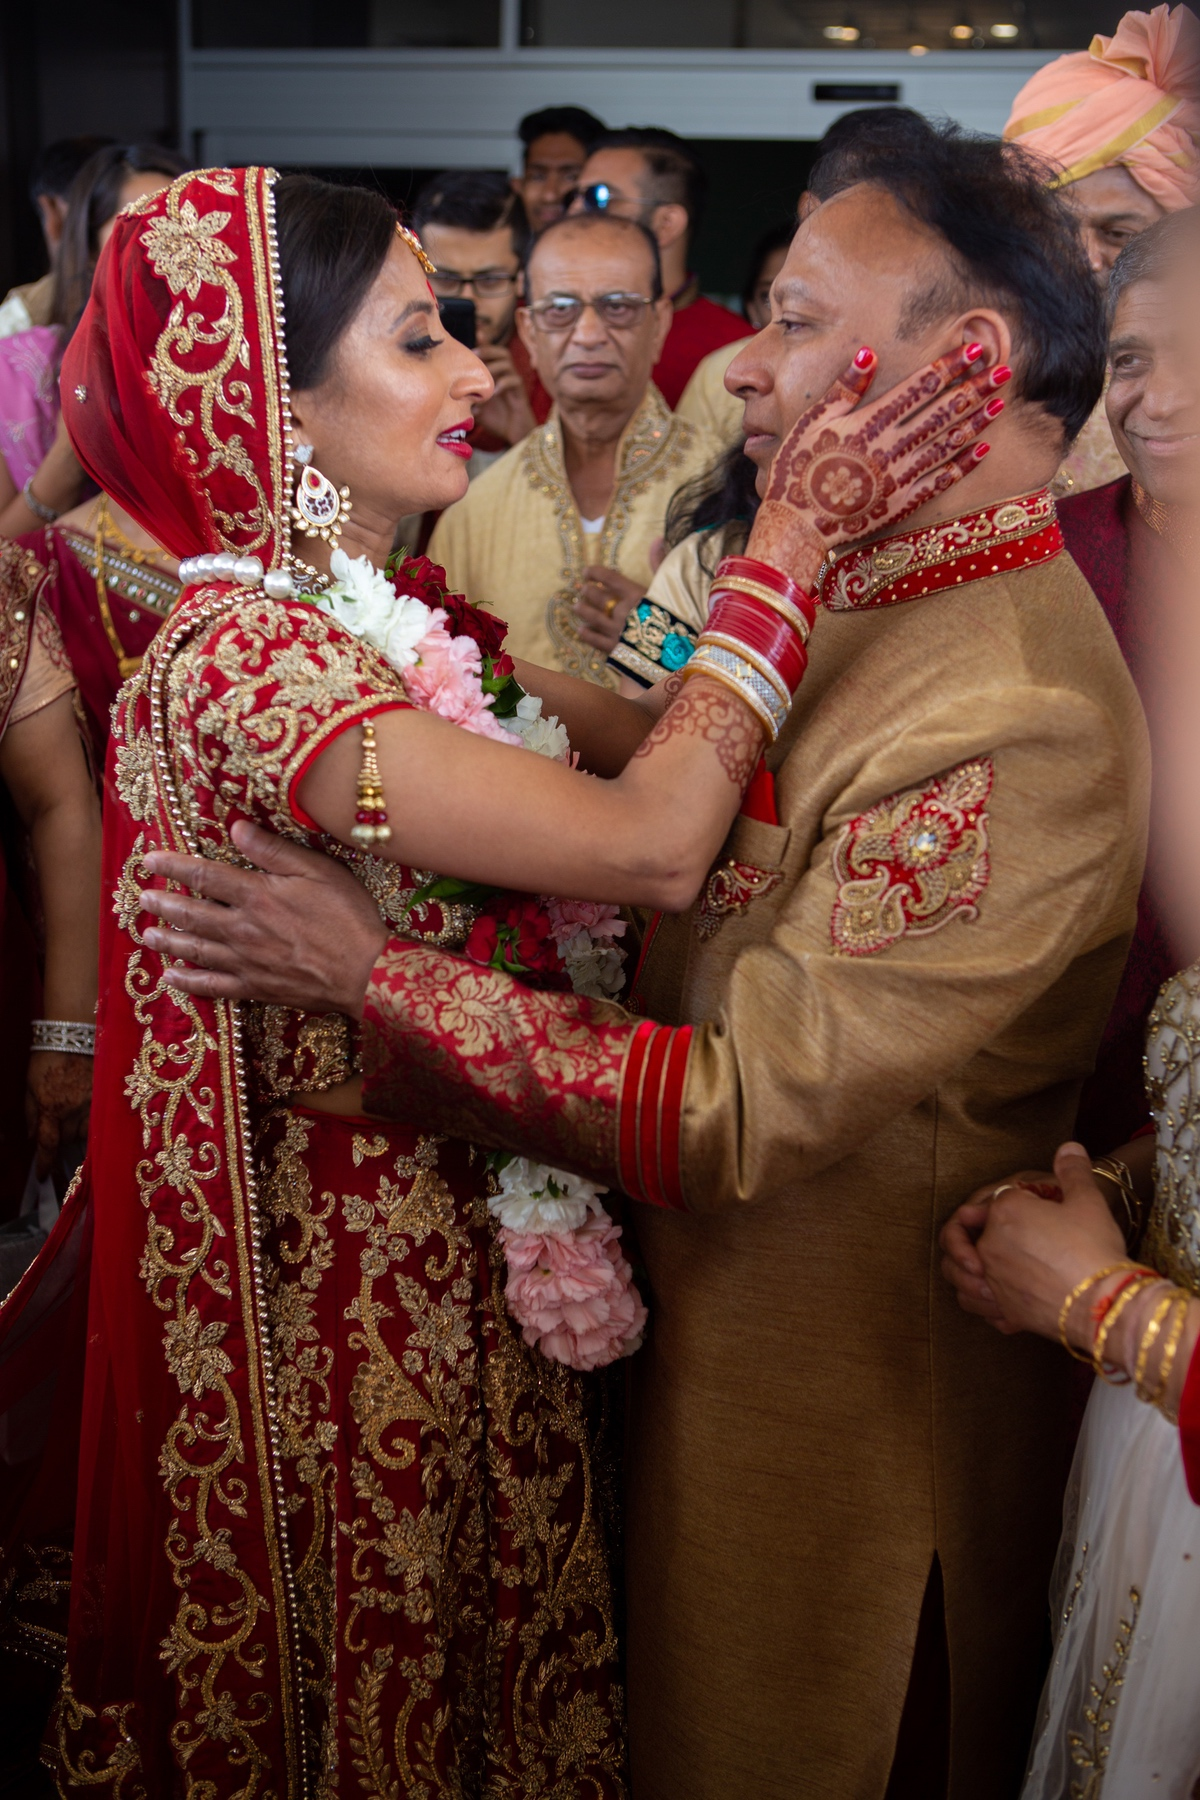 Le Cape Weddings - South Asian Wedding - Chicago Wedding Photographer P&V-74.jpg